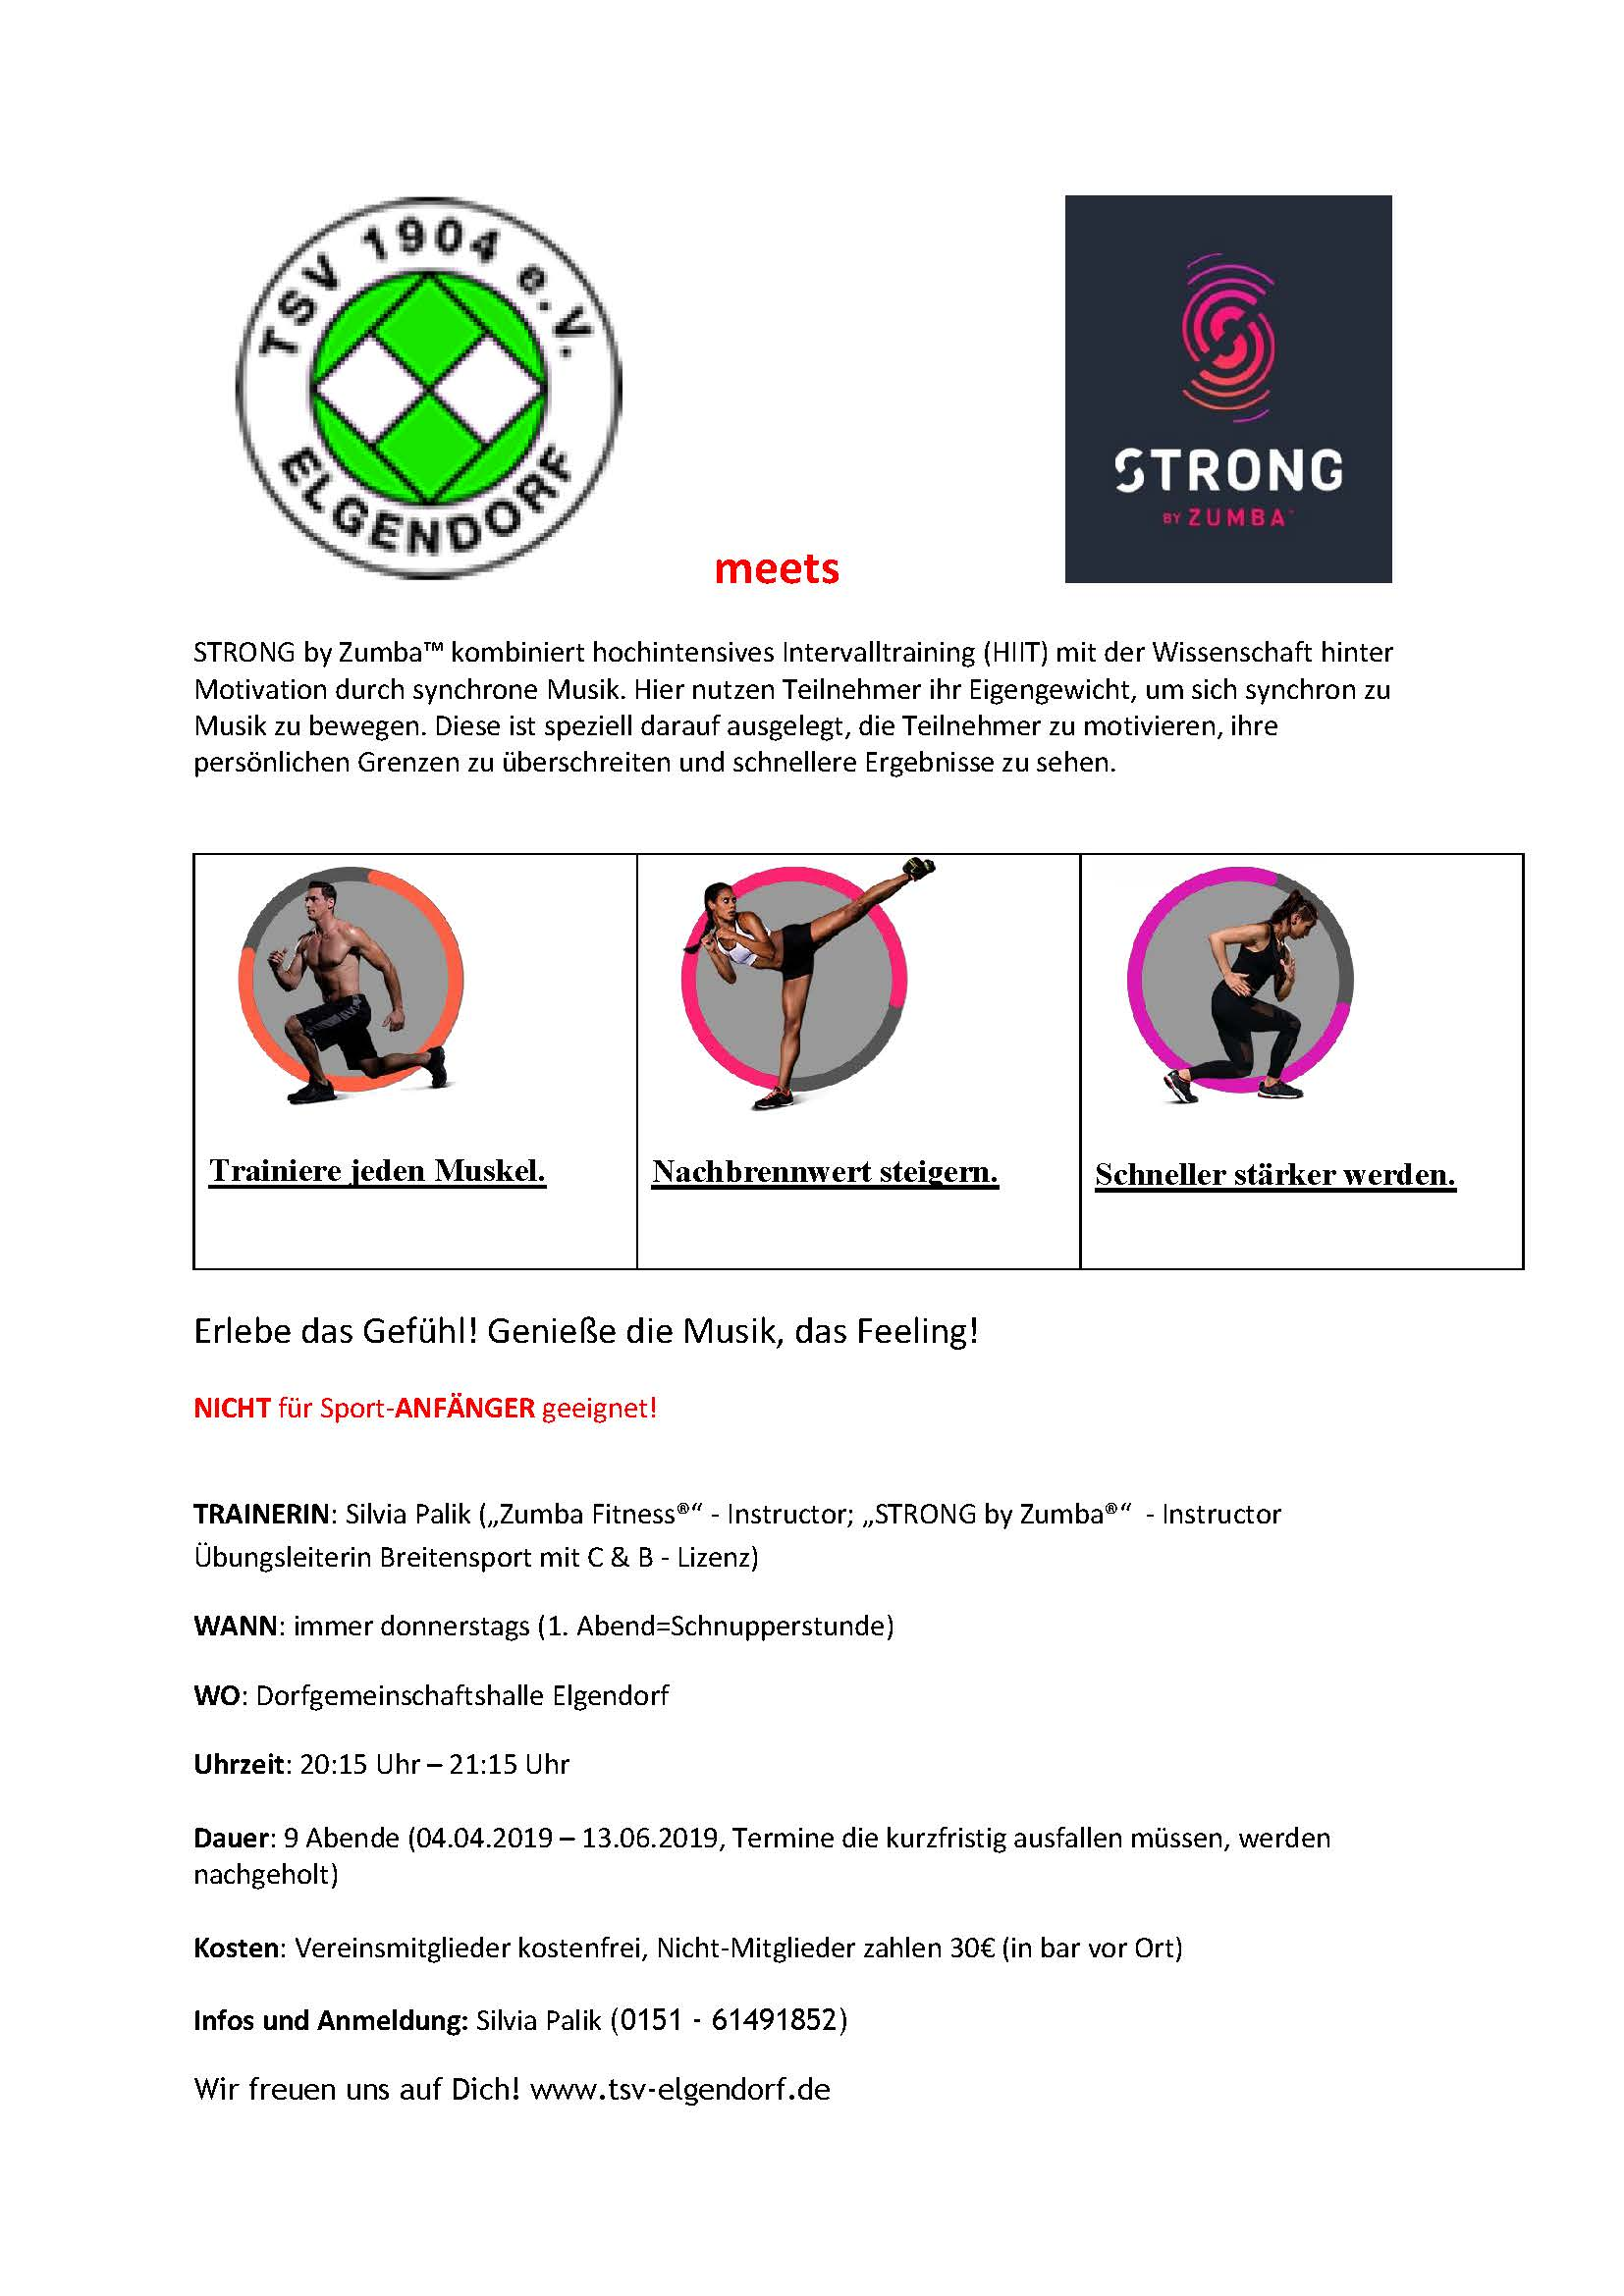 STRONG by Zumba 2019